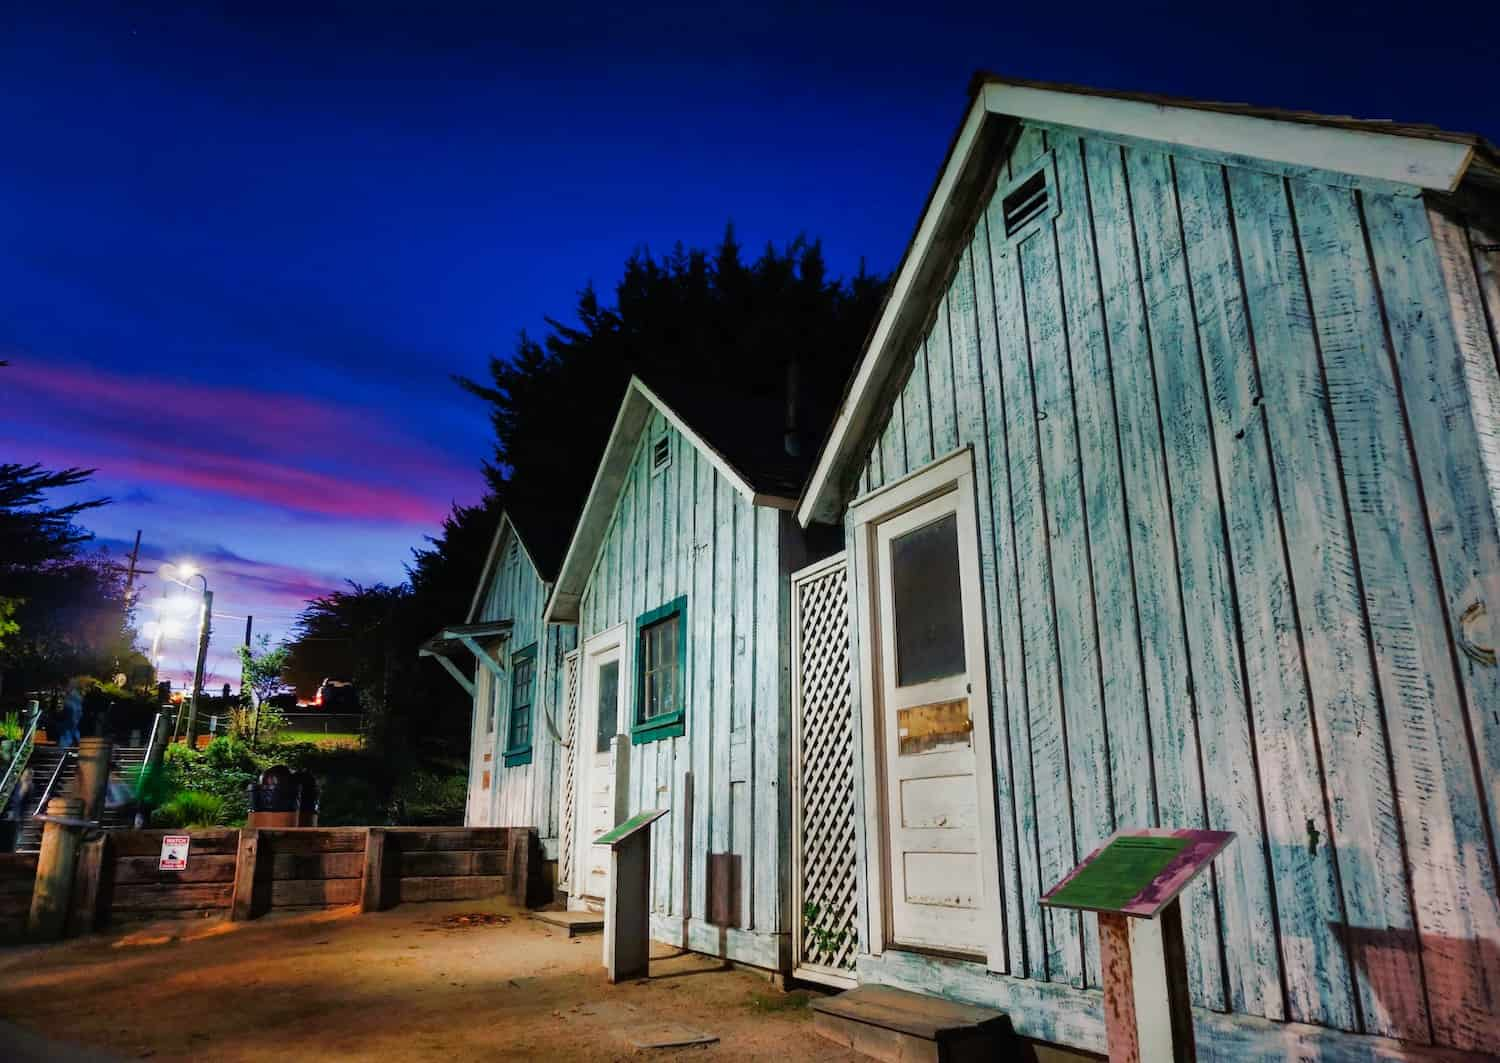 Cannery Row Worker Shacks in Monterey